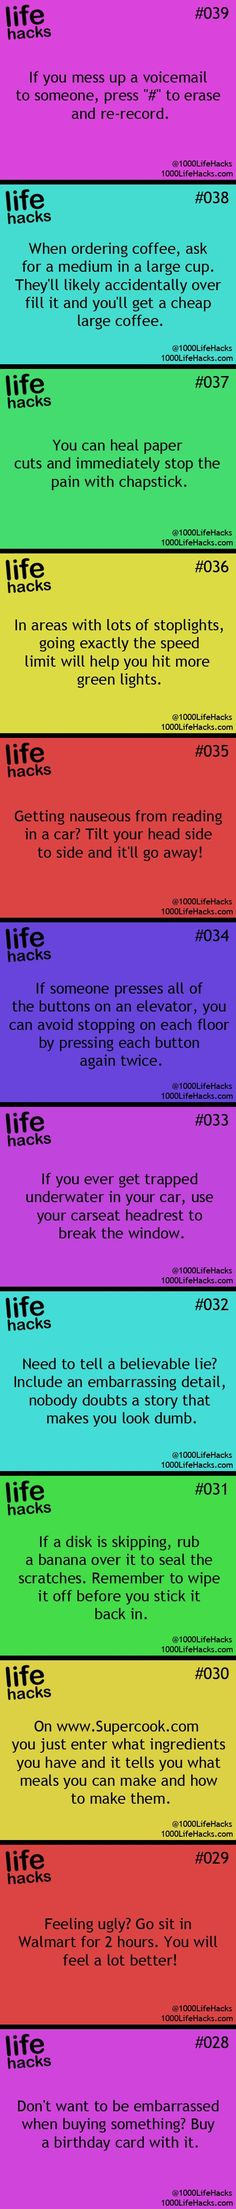 25 Useful Life Hacks… HAHA the last one